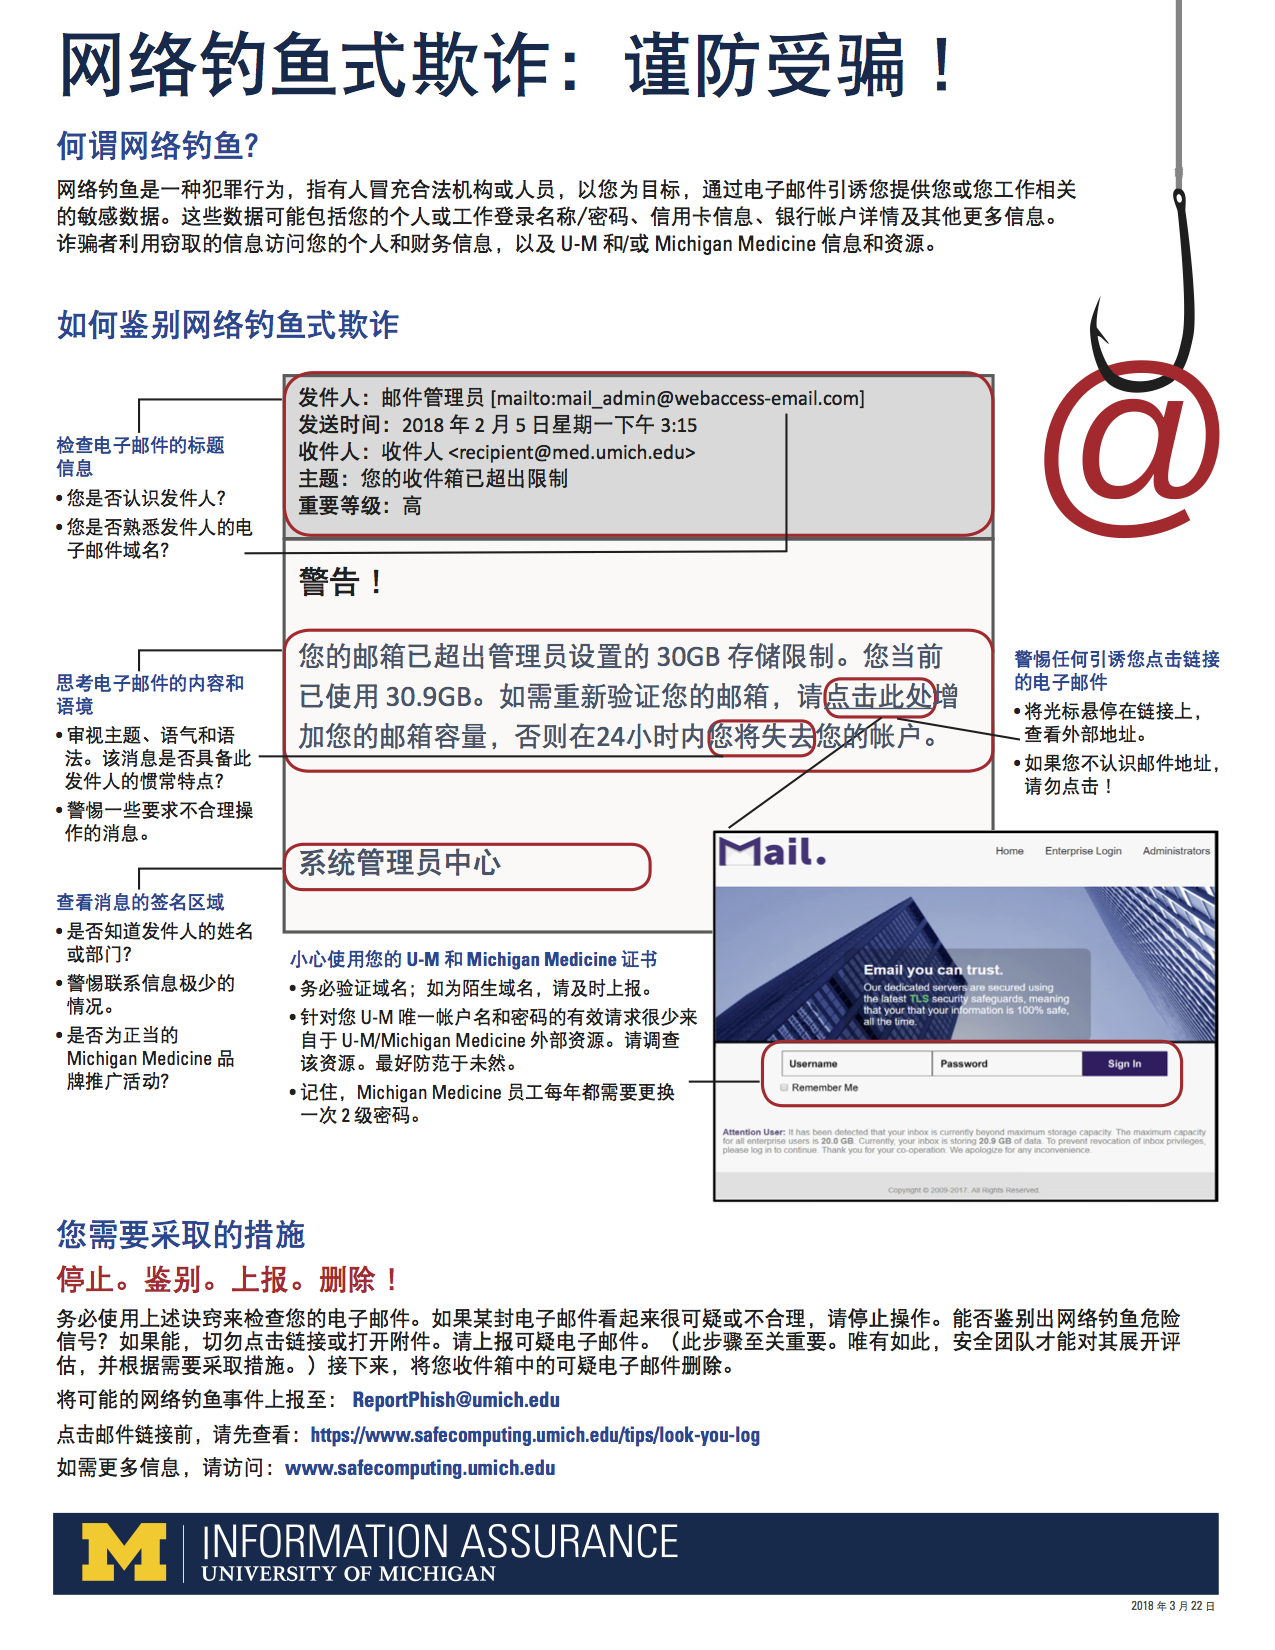 Anti-Phishing Posters and Tip Sheets in English, Mandarin, and